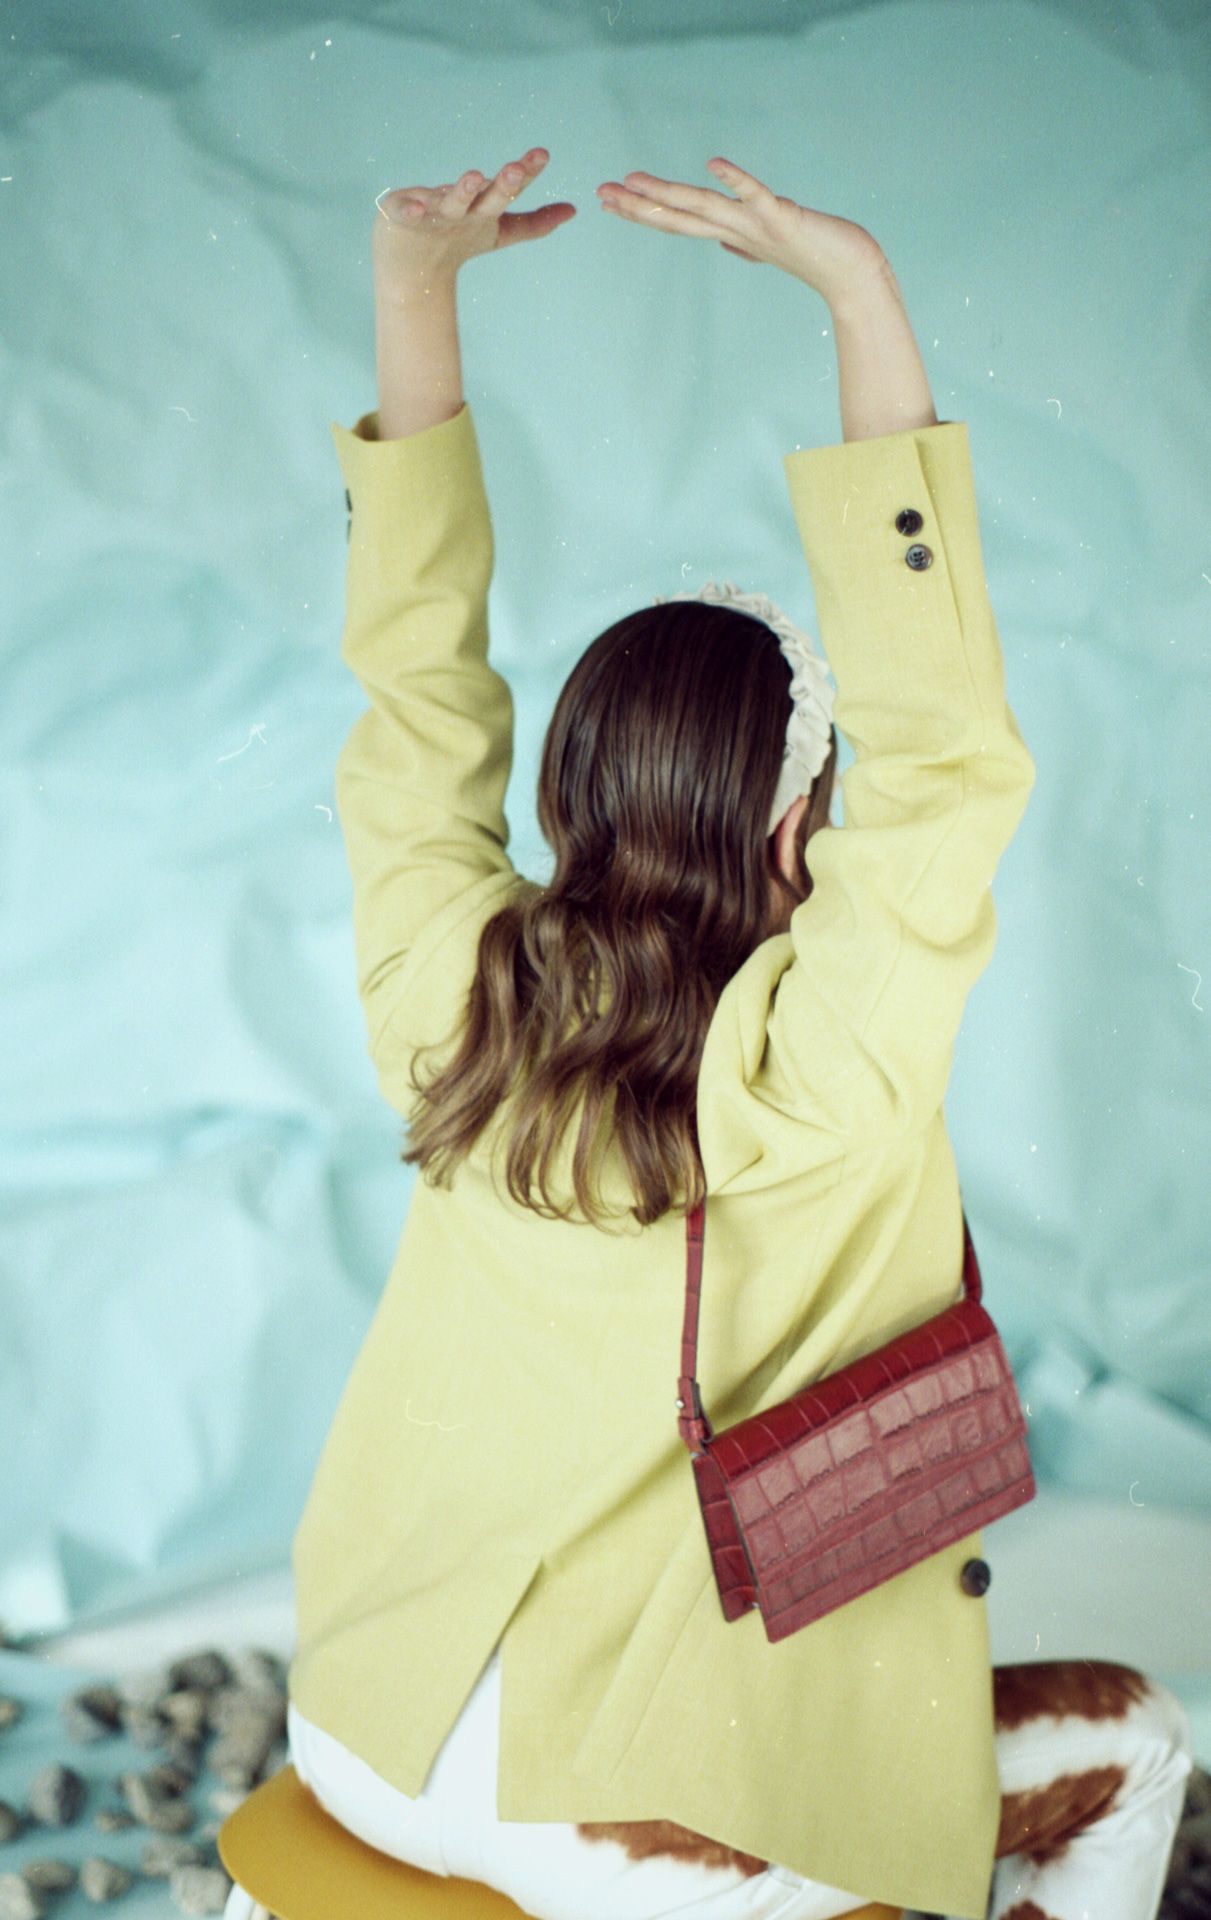 female model sitting on chair wearing light green suit jacket and cow patterned pants arms in the air and a small dark red shoulder bag on light blue background for bouquet Montreal-brand Spring-Summer 2020 campaign with styling and artistic direction by Studio TB